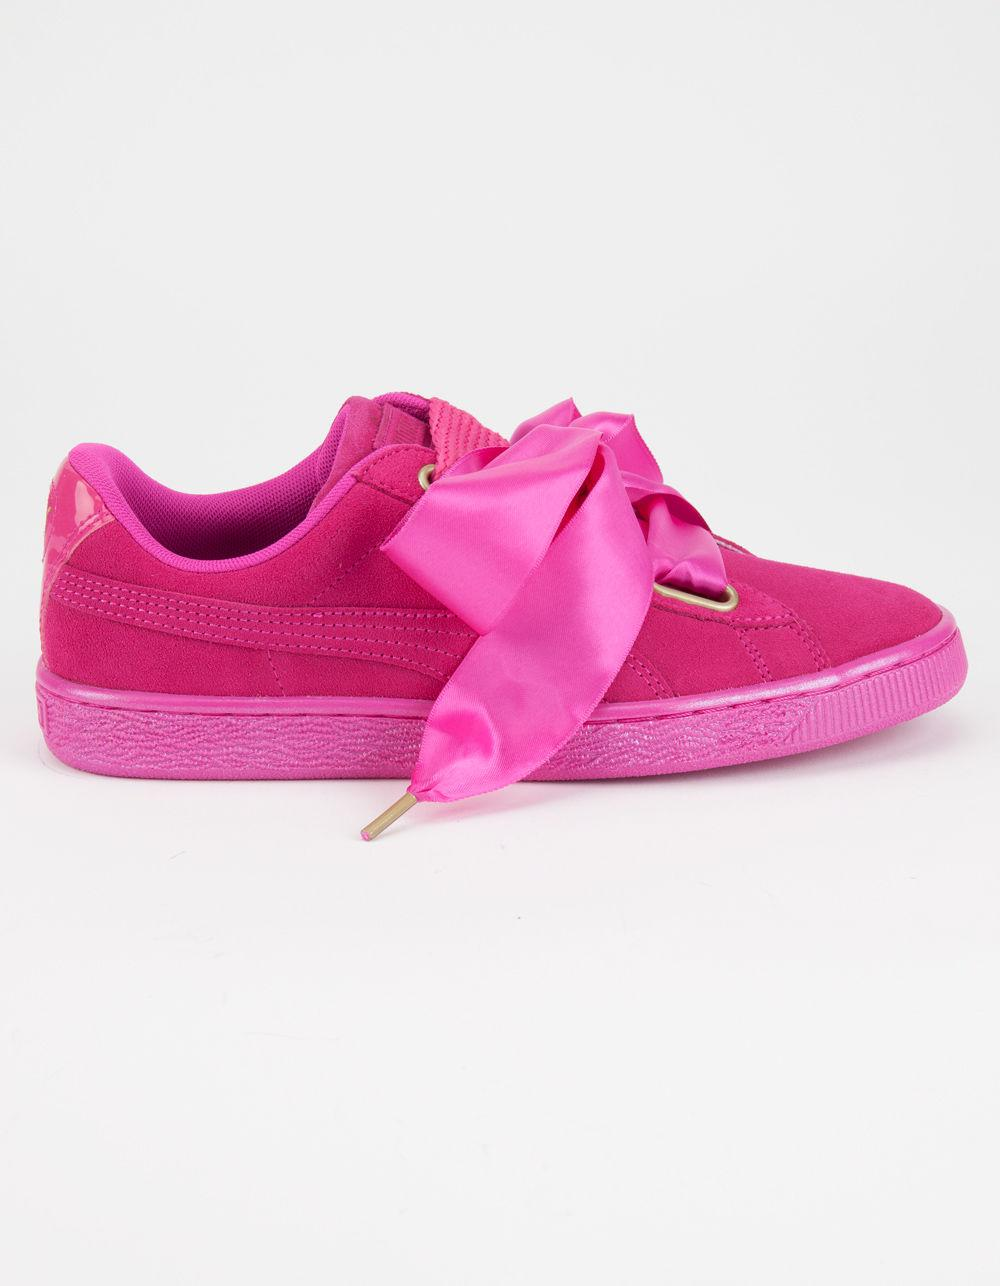 e9f7238687c Lyst - PUMA Suede Heart Satin Womens Sneakers in Pink